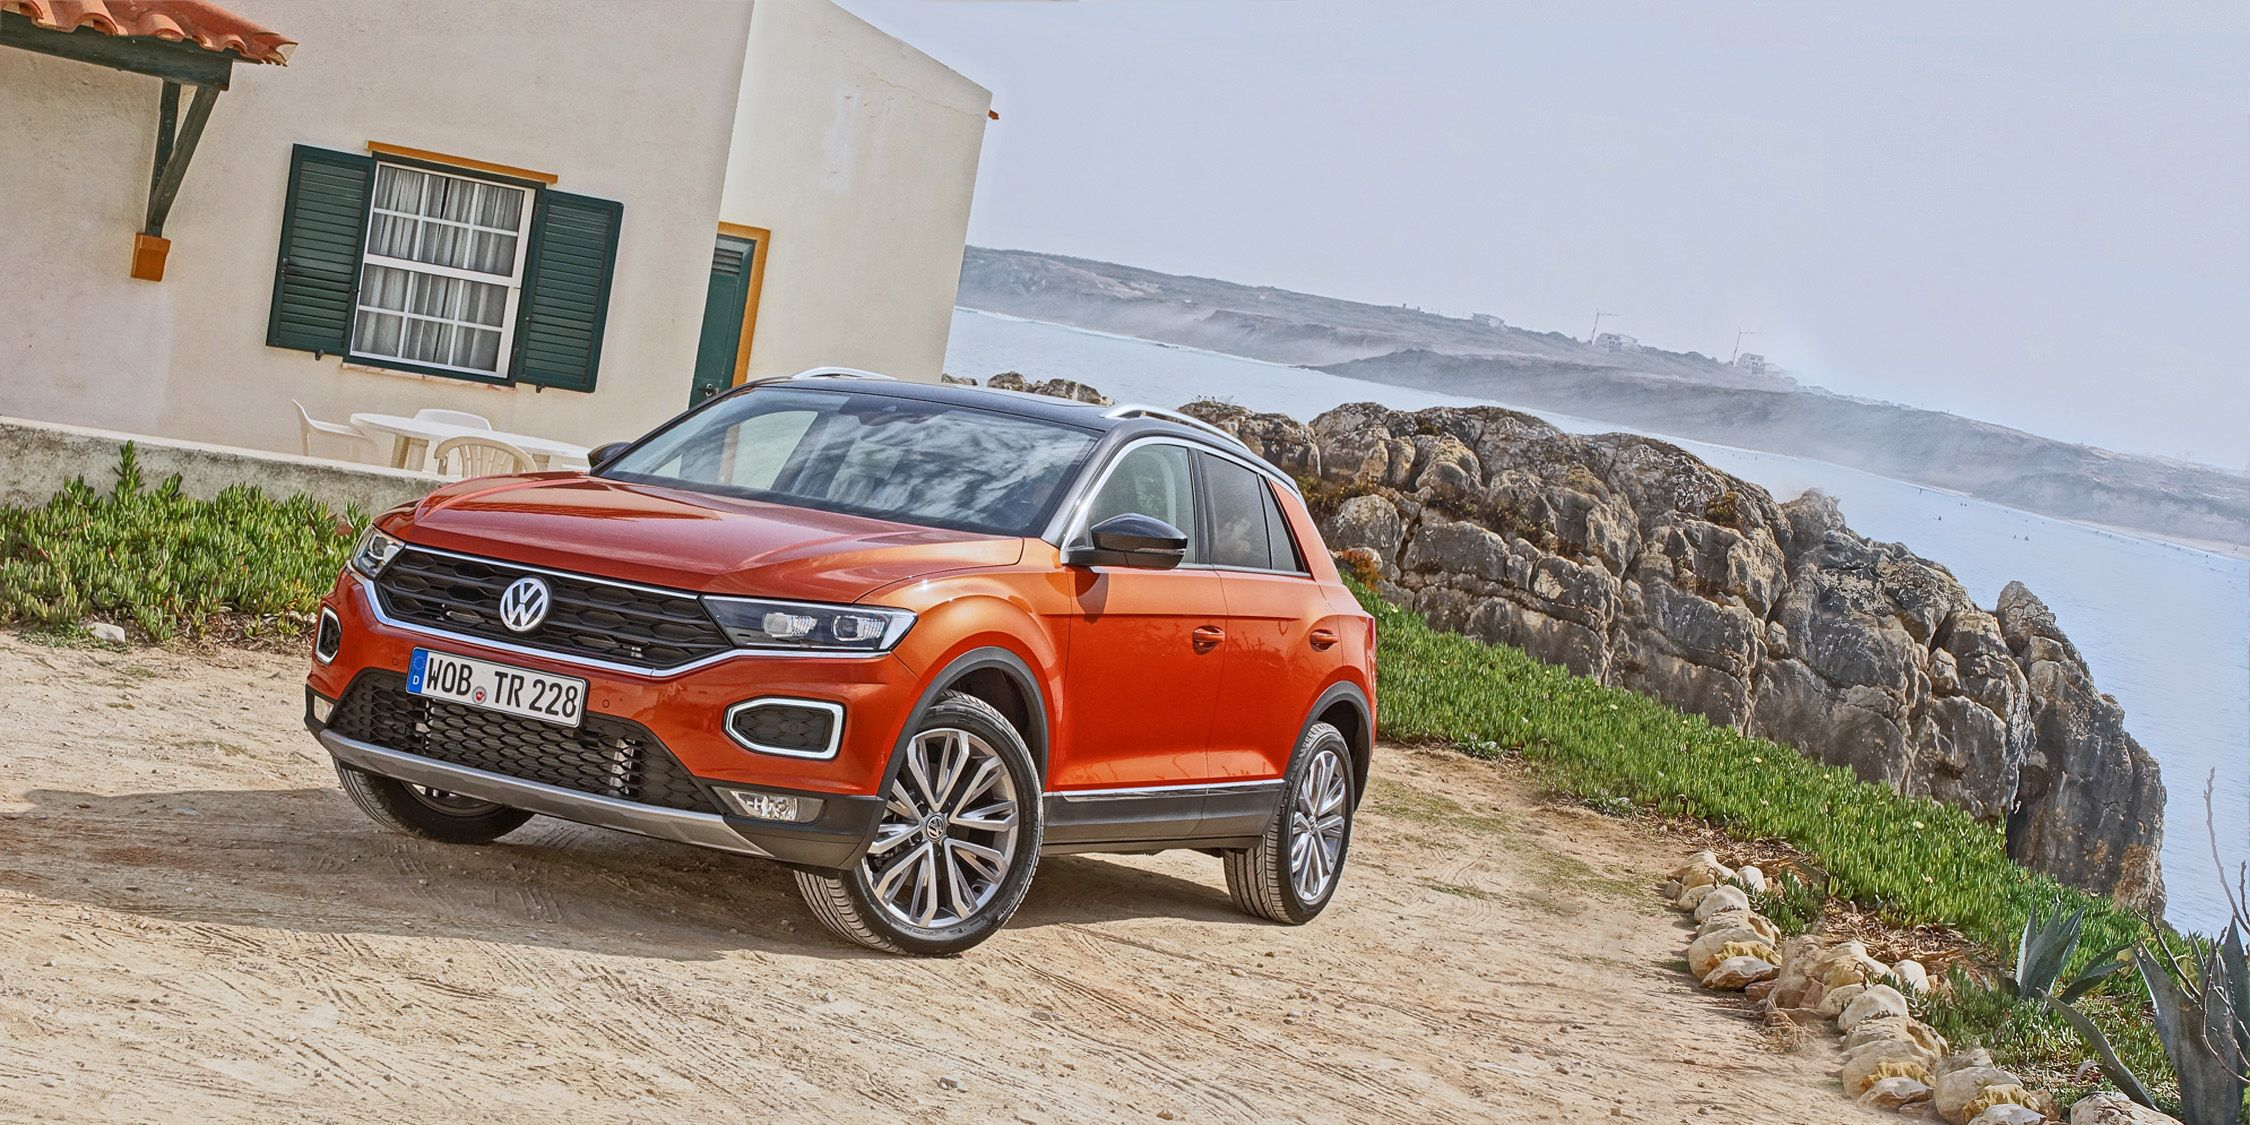 2018 volkswagen t-roc first drive | review | car and driver